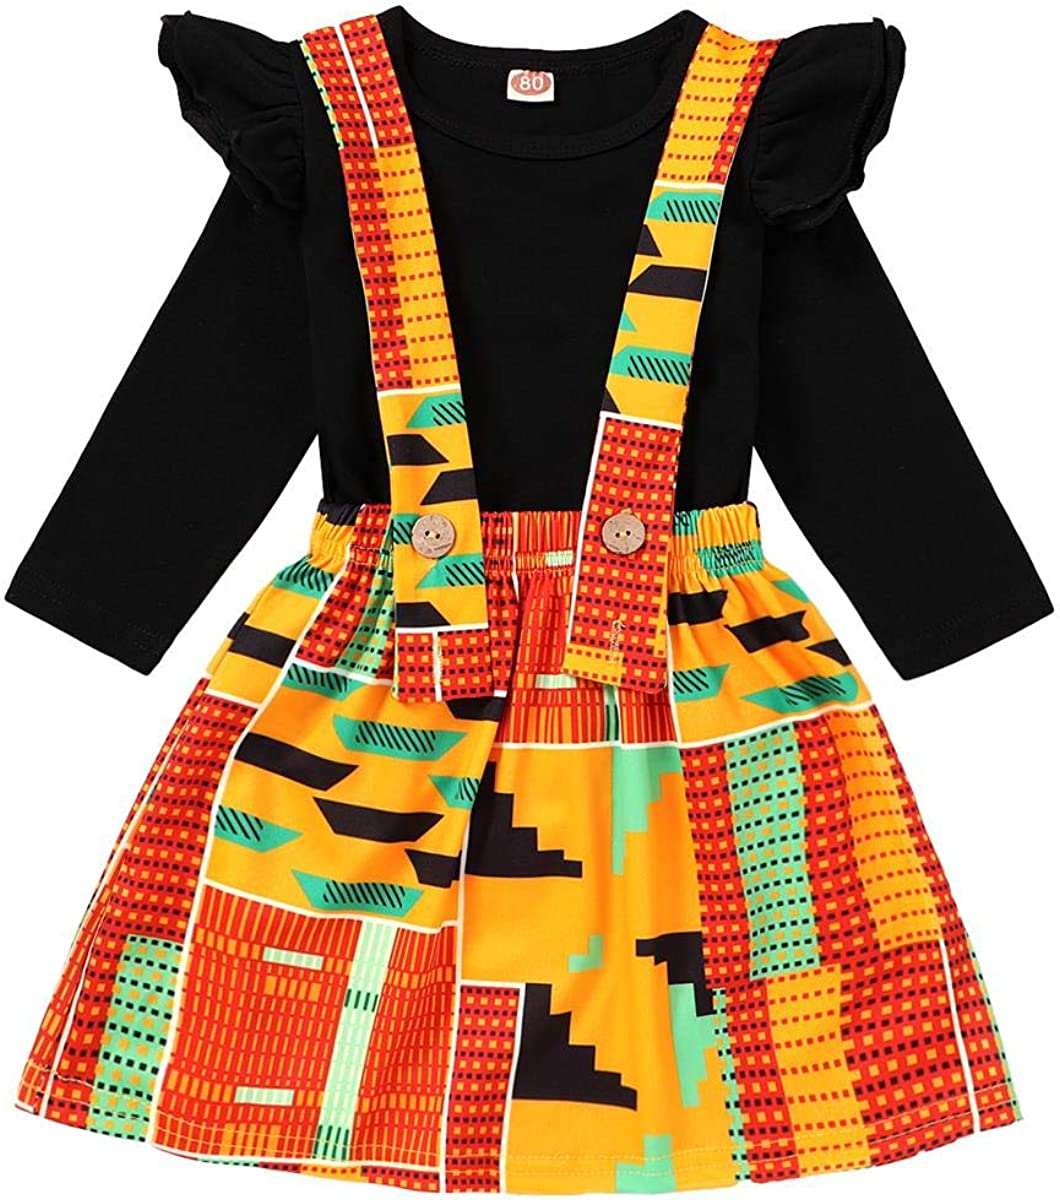 YOUNGER TREE Babys Dashiki African Print Strap Skirt Fall Winter Outfit Kente Clothes Dress for Girls